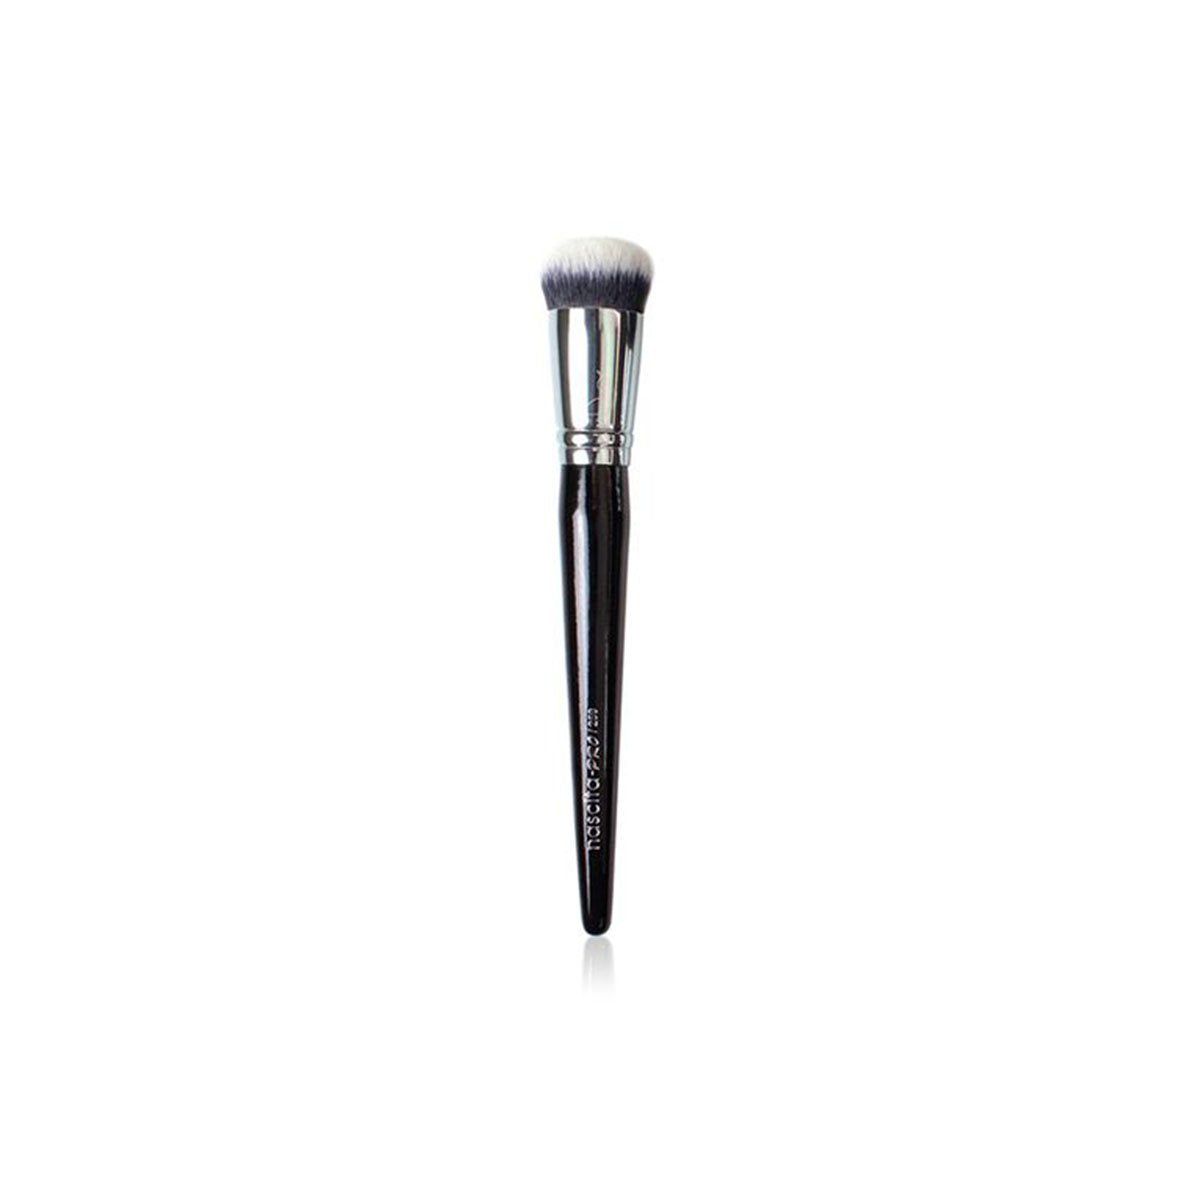 Nascita Do Pro Brush - Kabuki Found